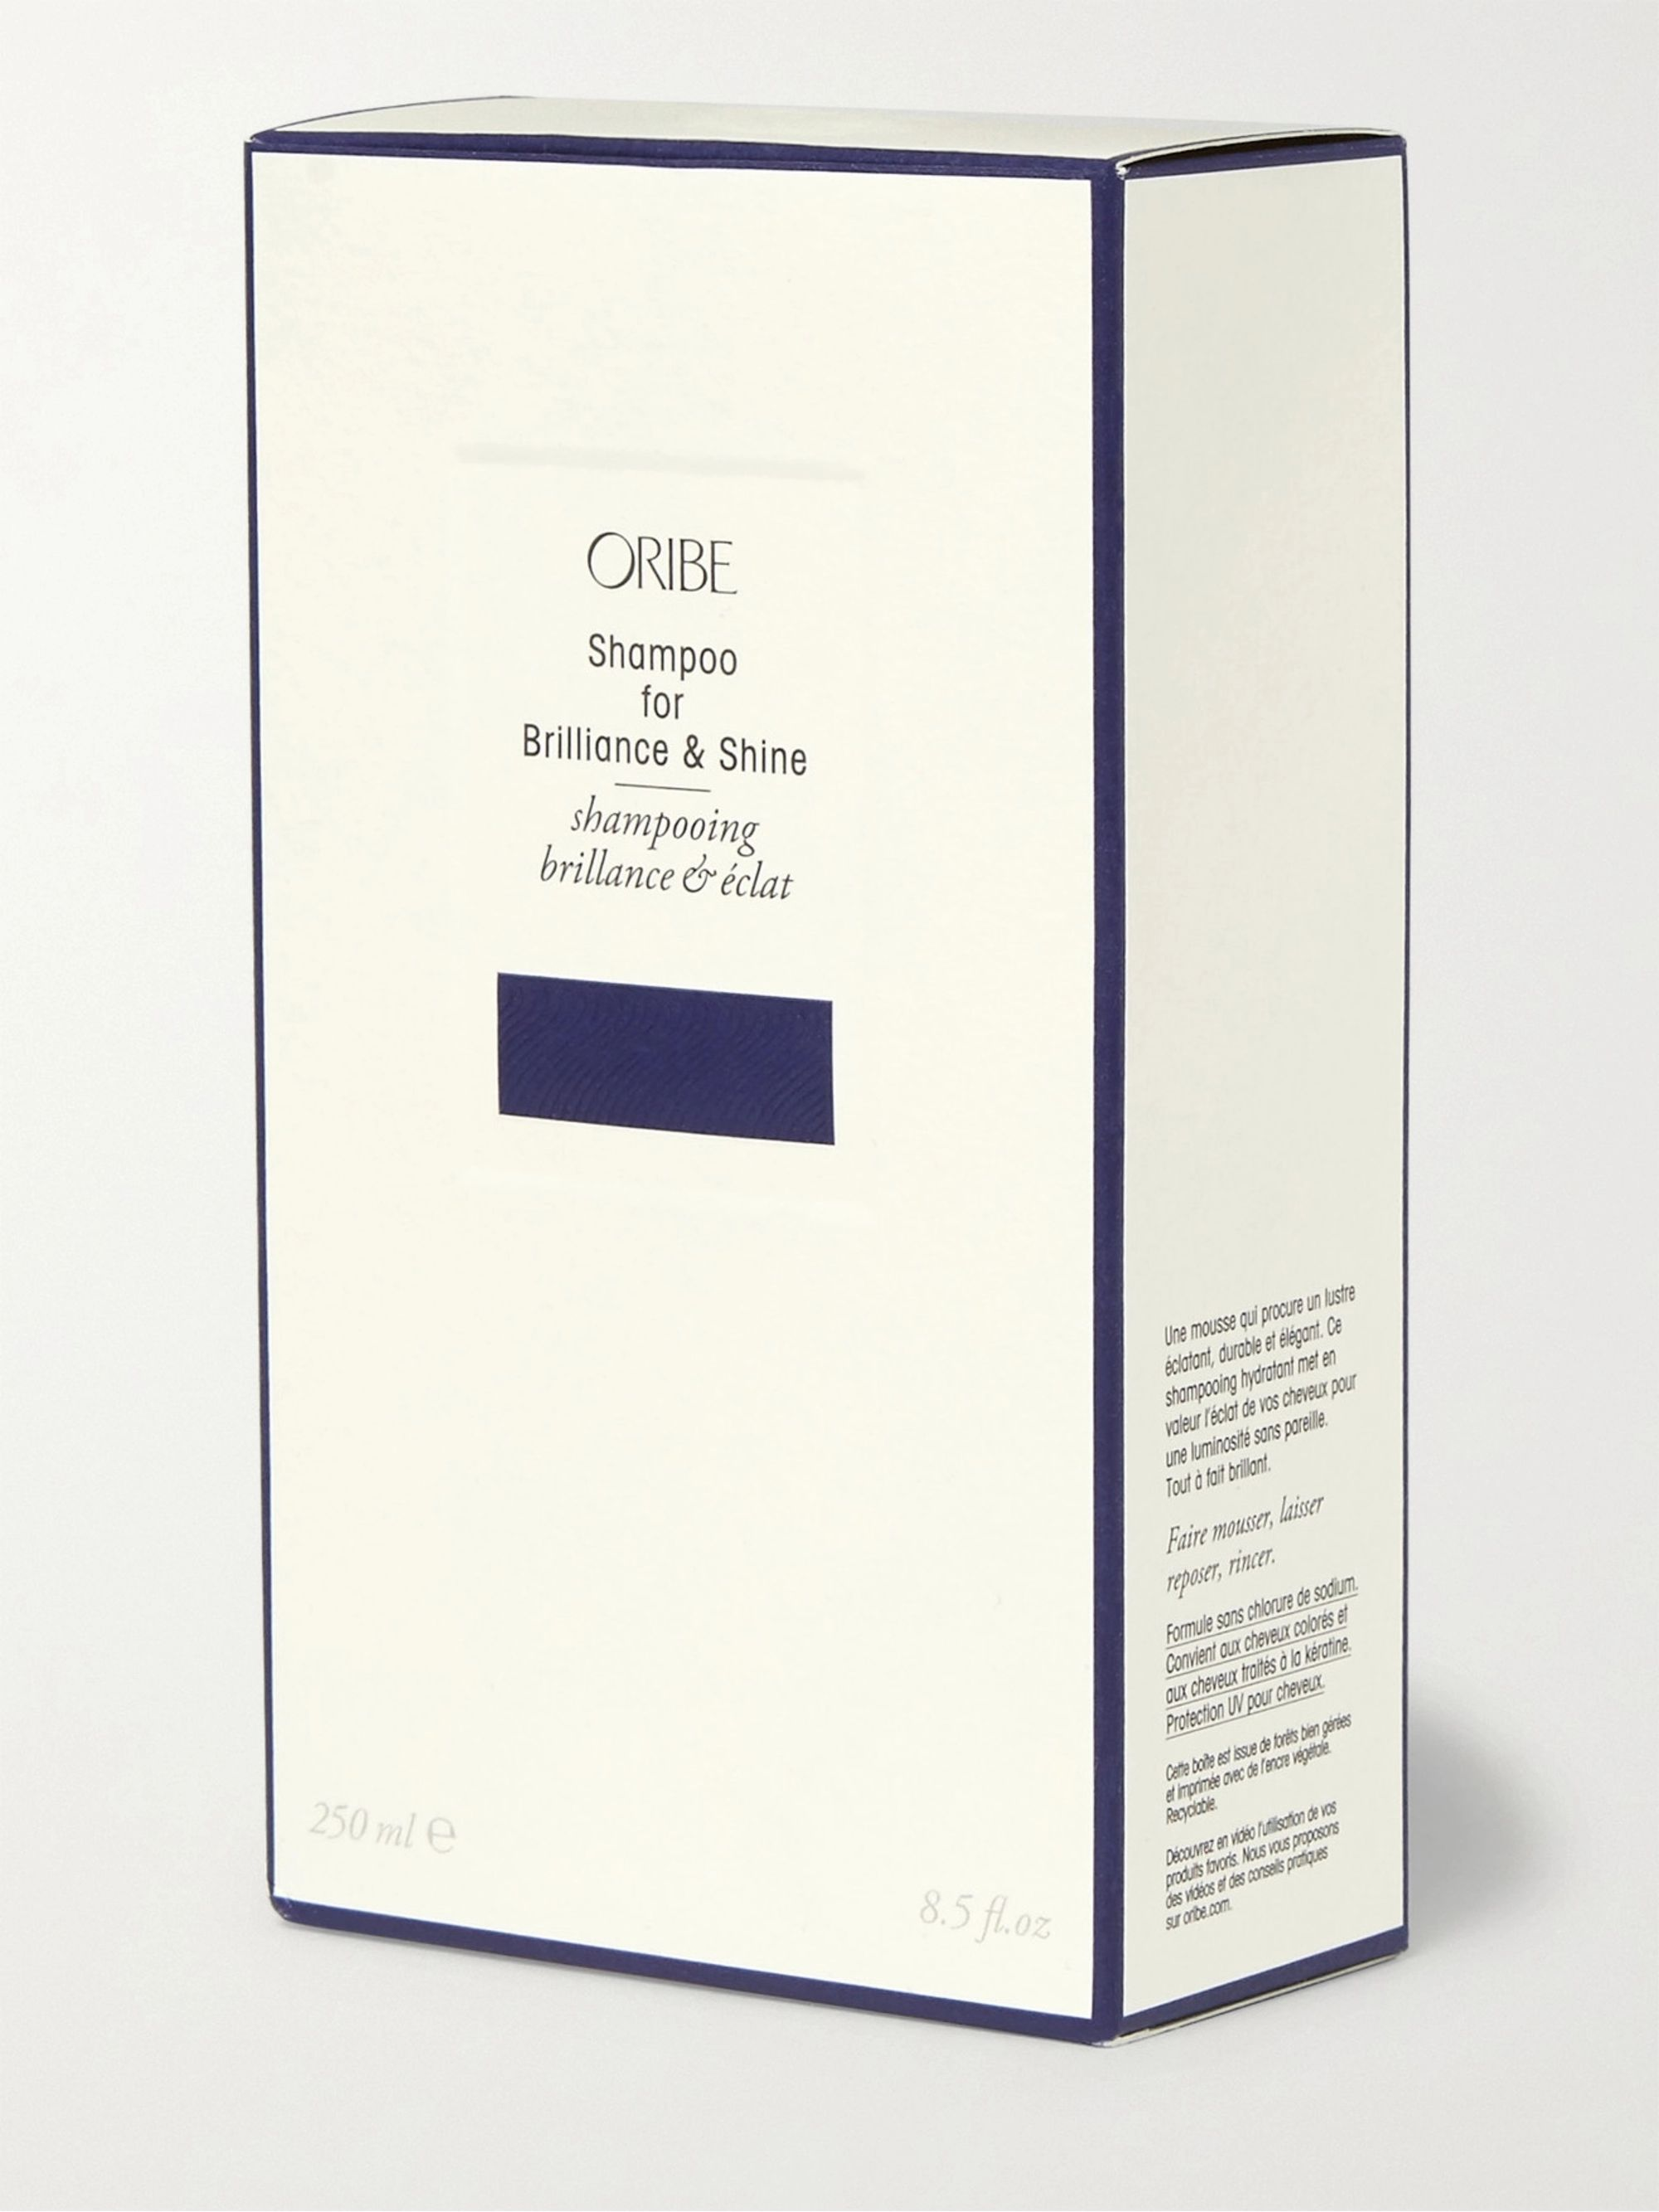 Oribe Shampoo for Brilliance & Shine, 250ml